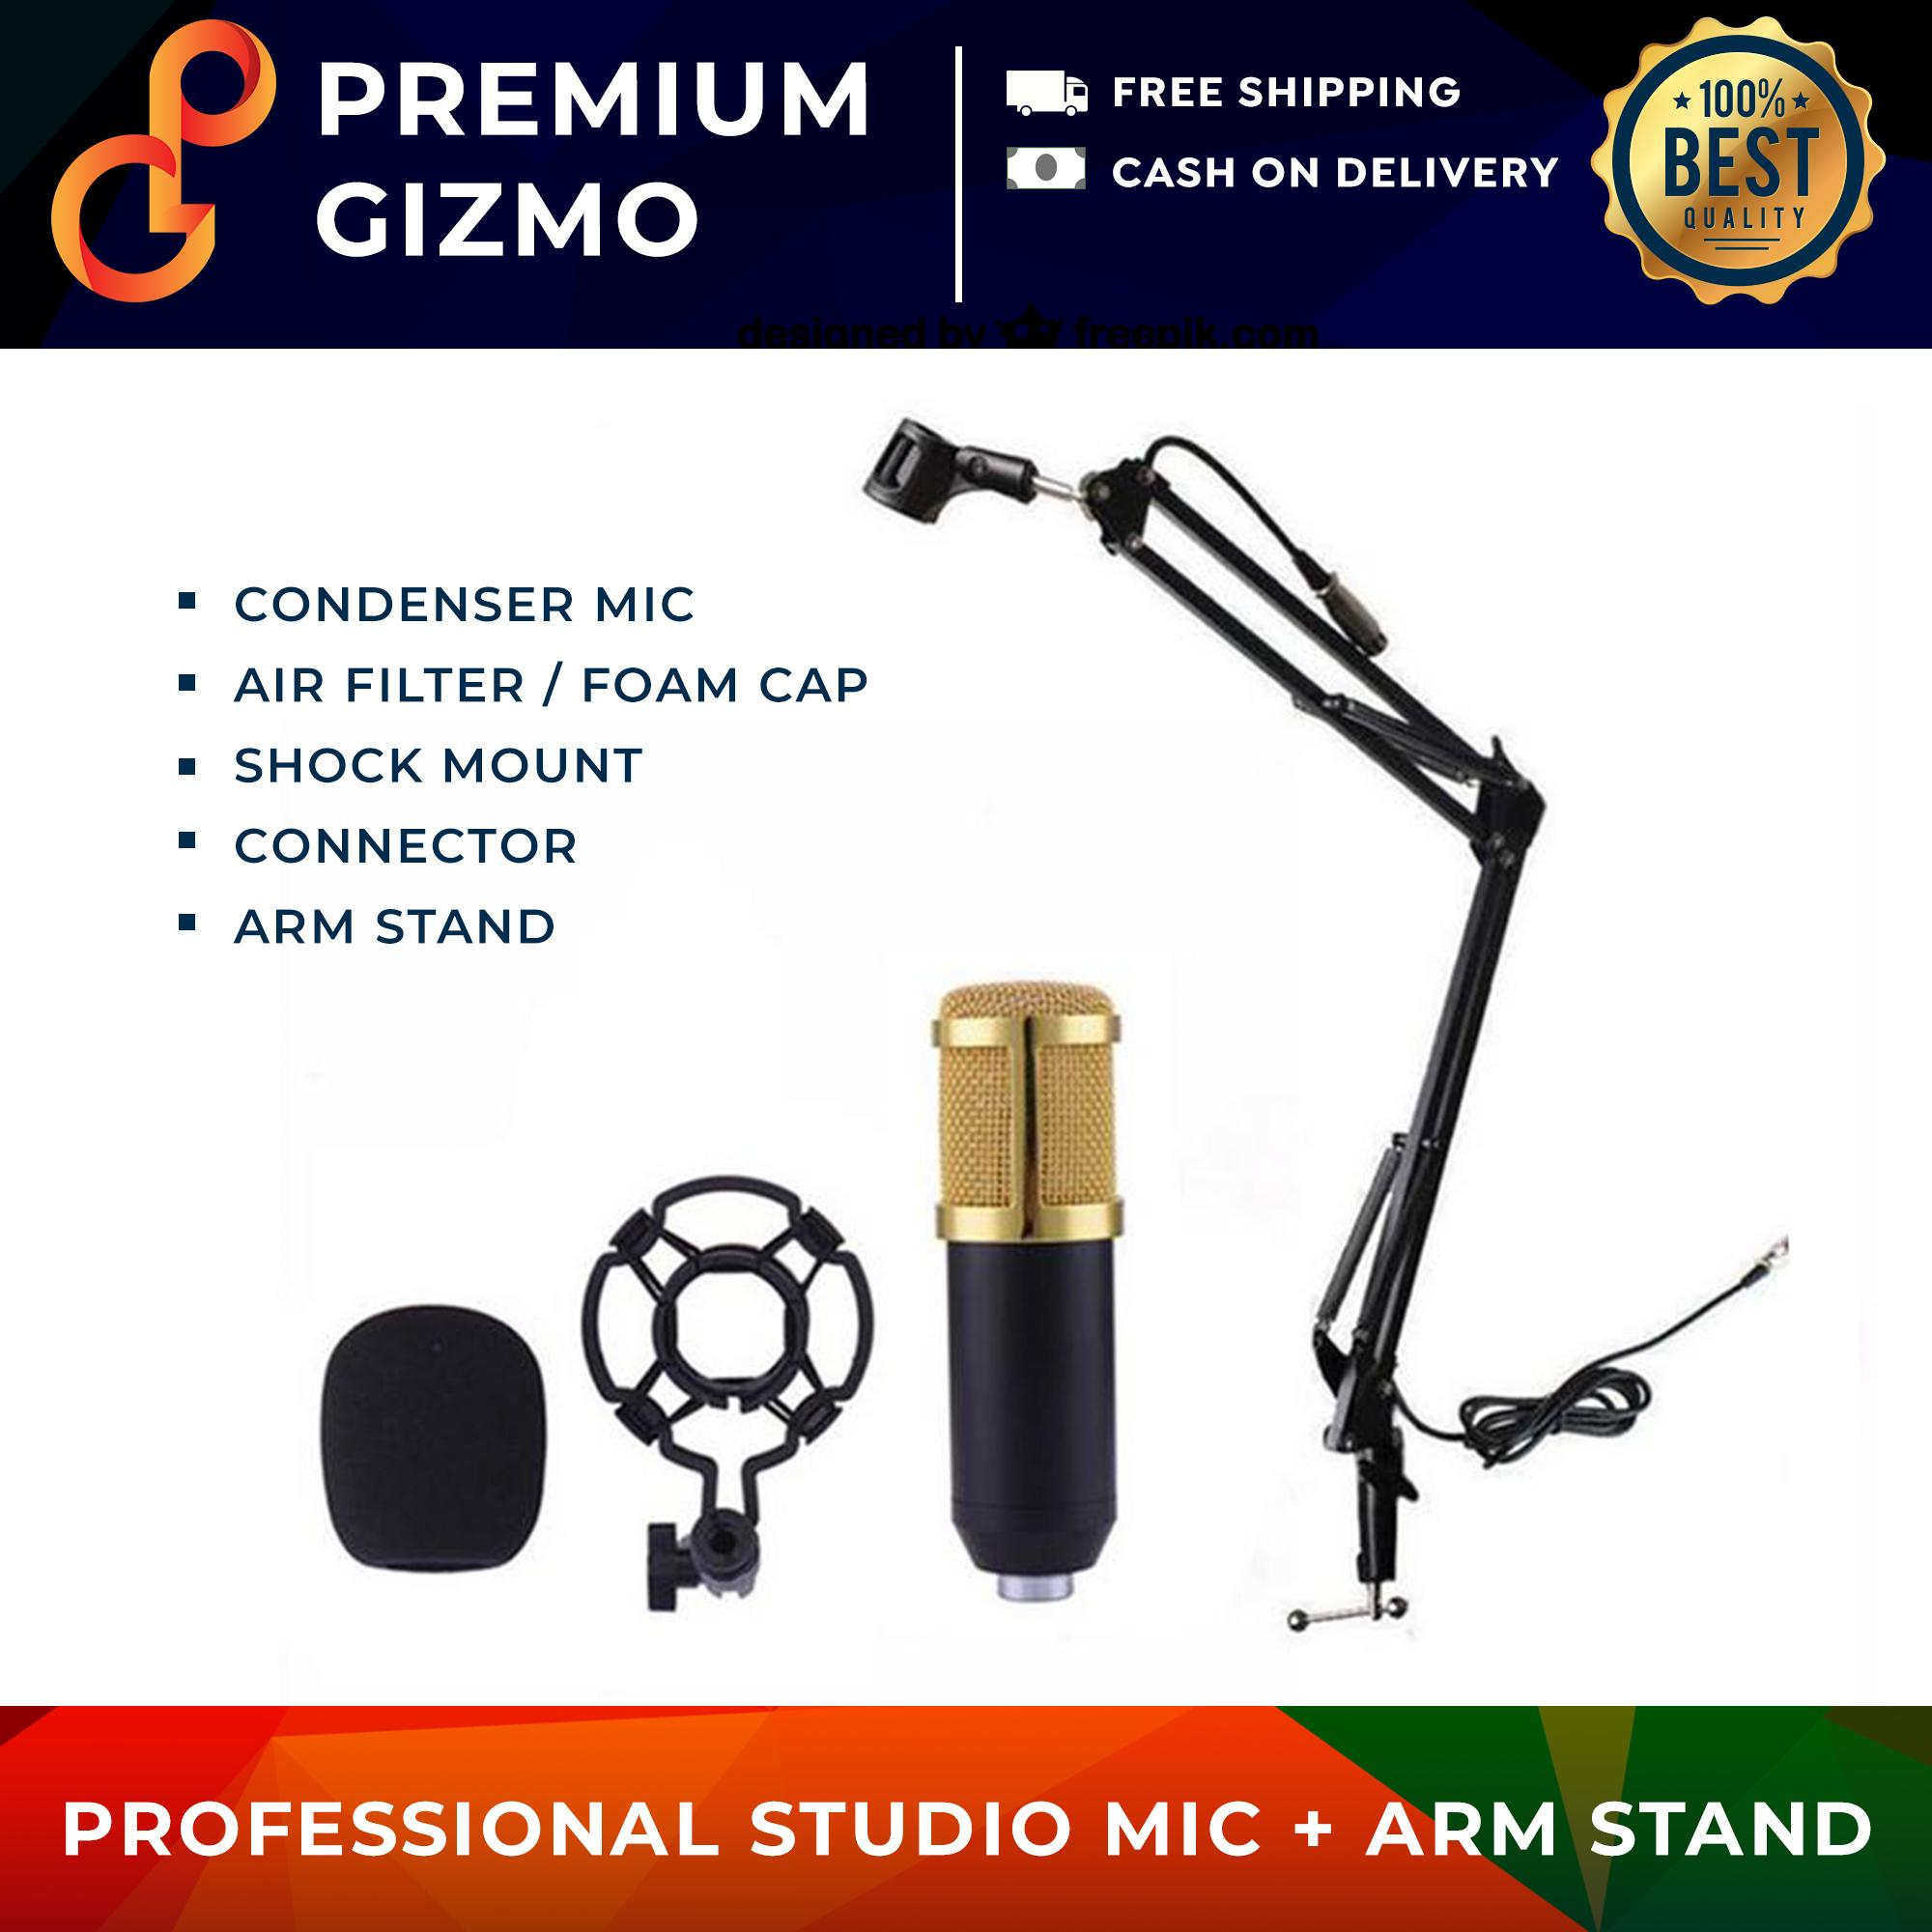 BM-800 Condenser Microphone with Arm Stand Professional PC Phone Mic bm800 bm 800 Voice